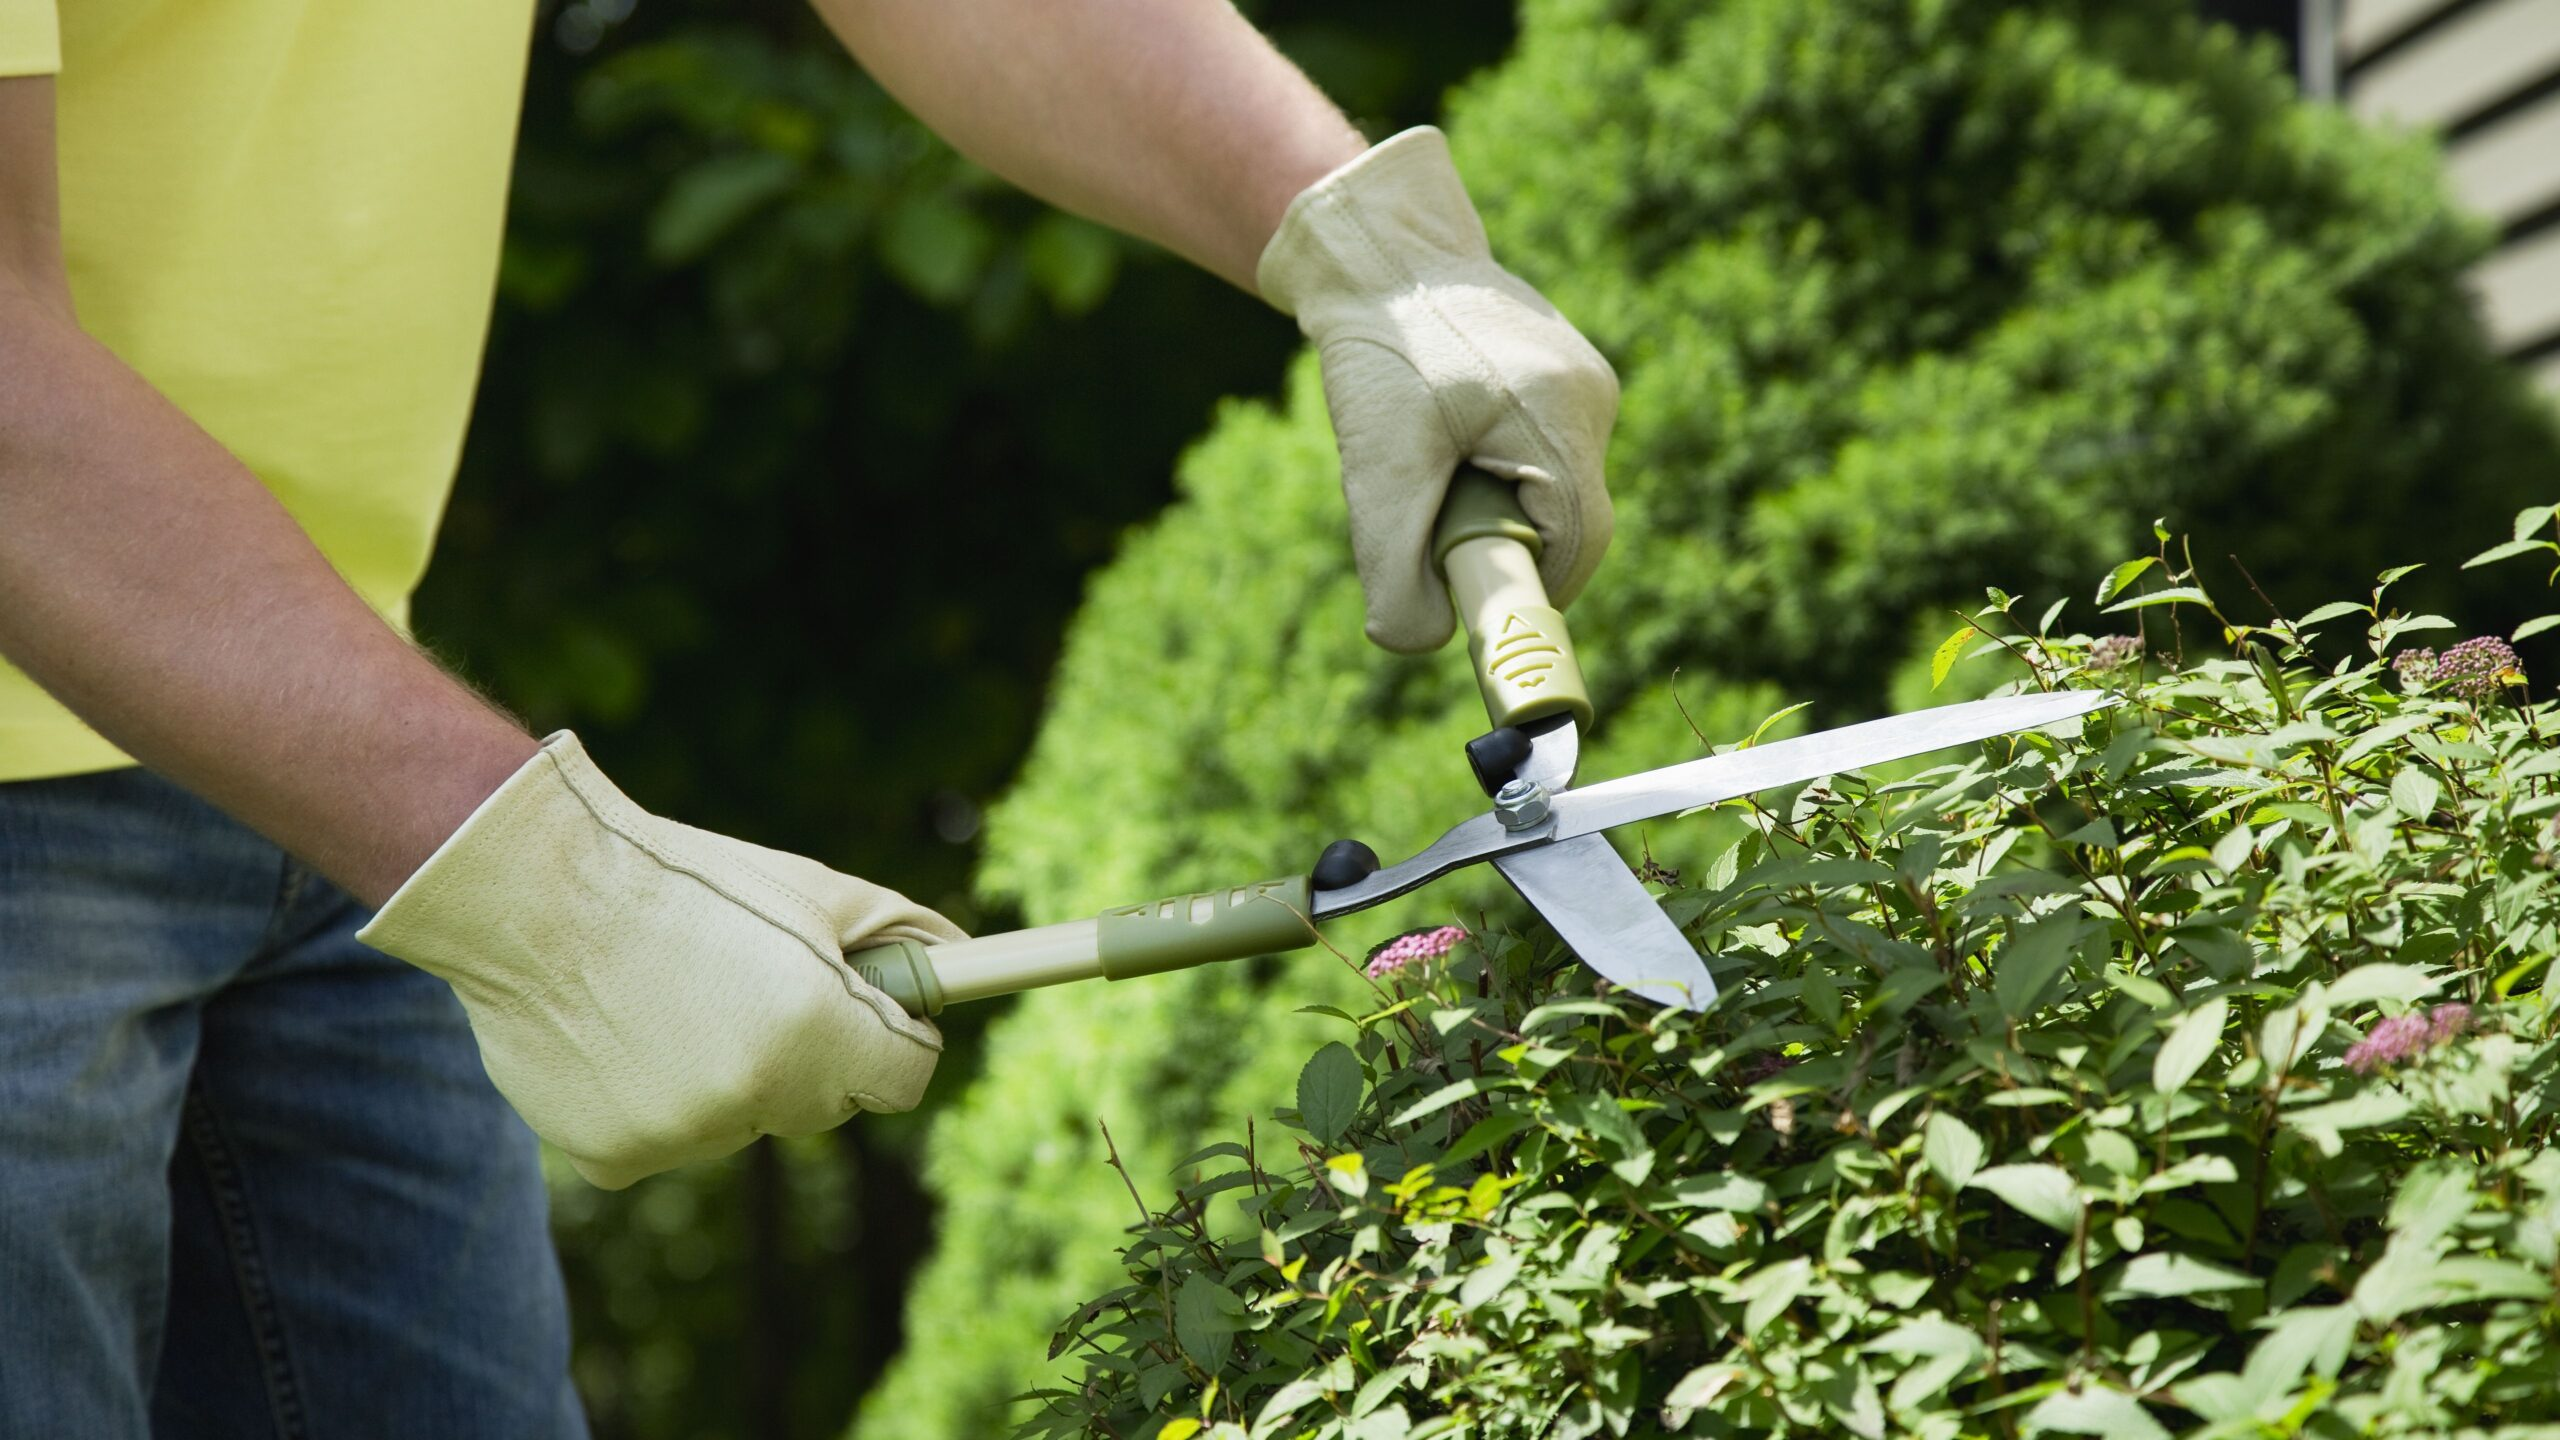 The Top 5 Landscape Maintenance Mistakes to Avoid